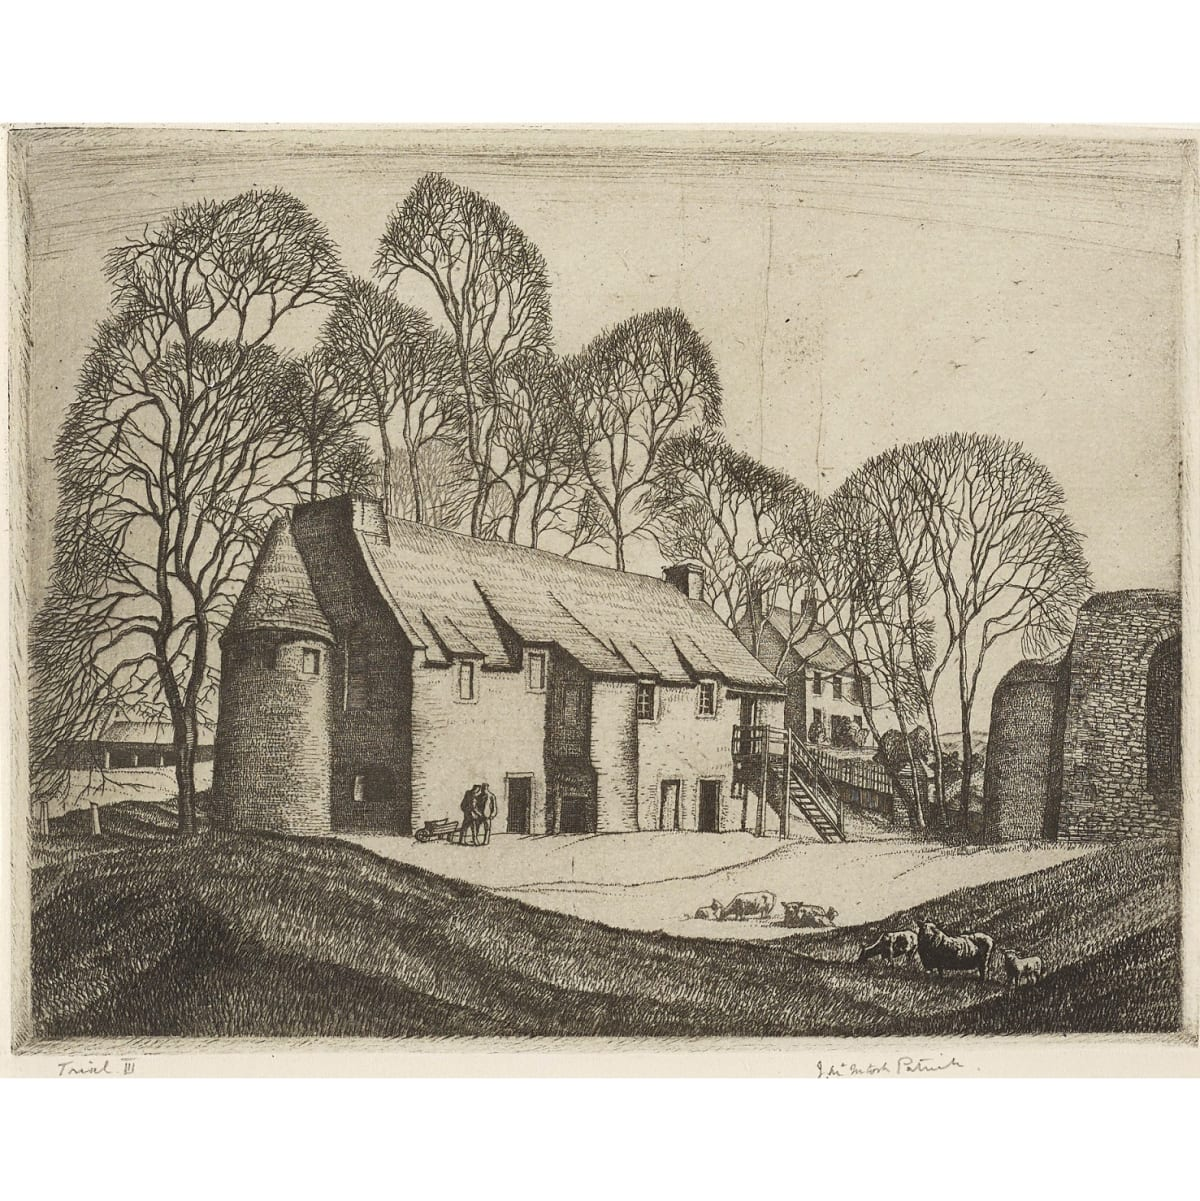 James McIntosh Patrick Powrie Castle, 1930 signed in pencil lower right and inscribed 'Trial III' lower left etching 5 1/8 x 6 5/8 inches